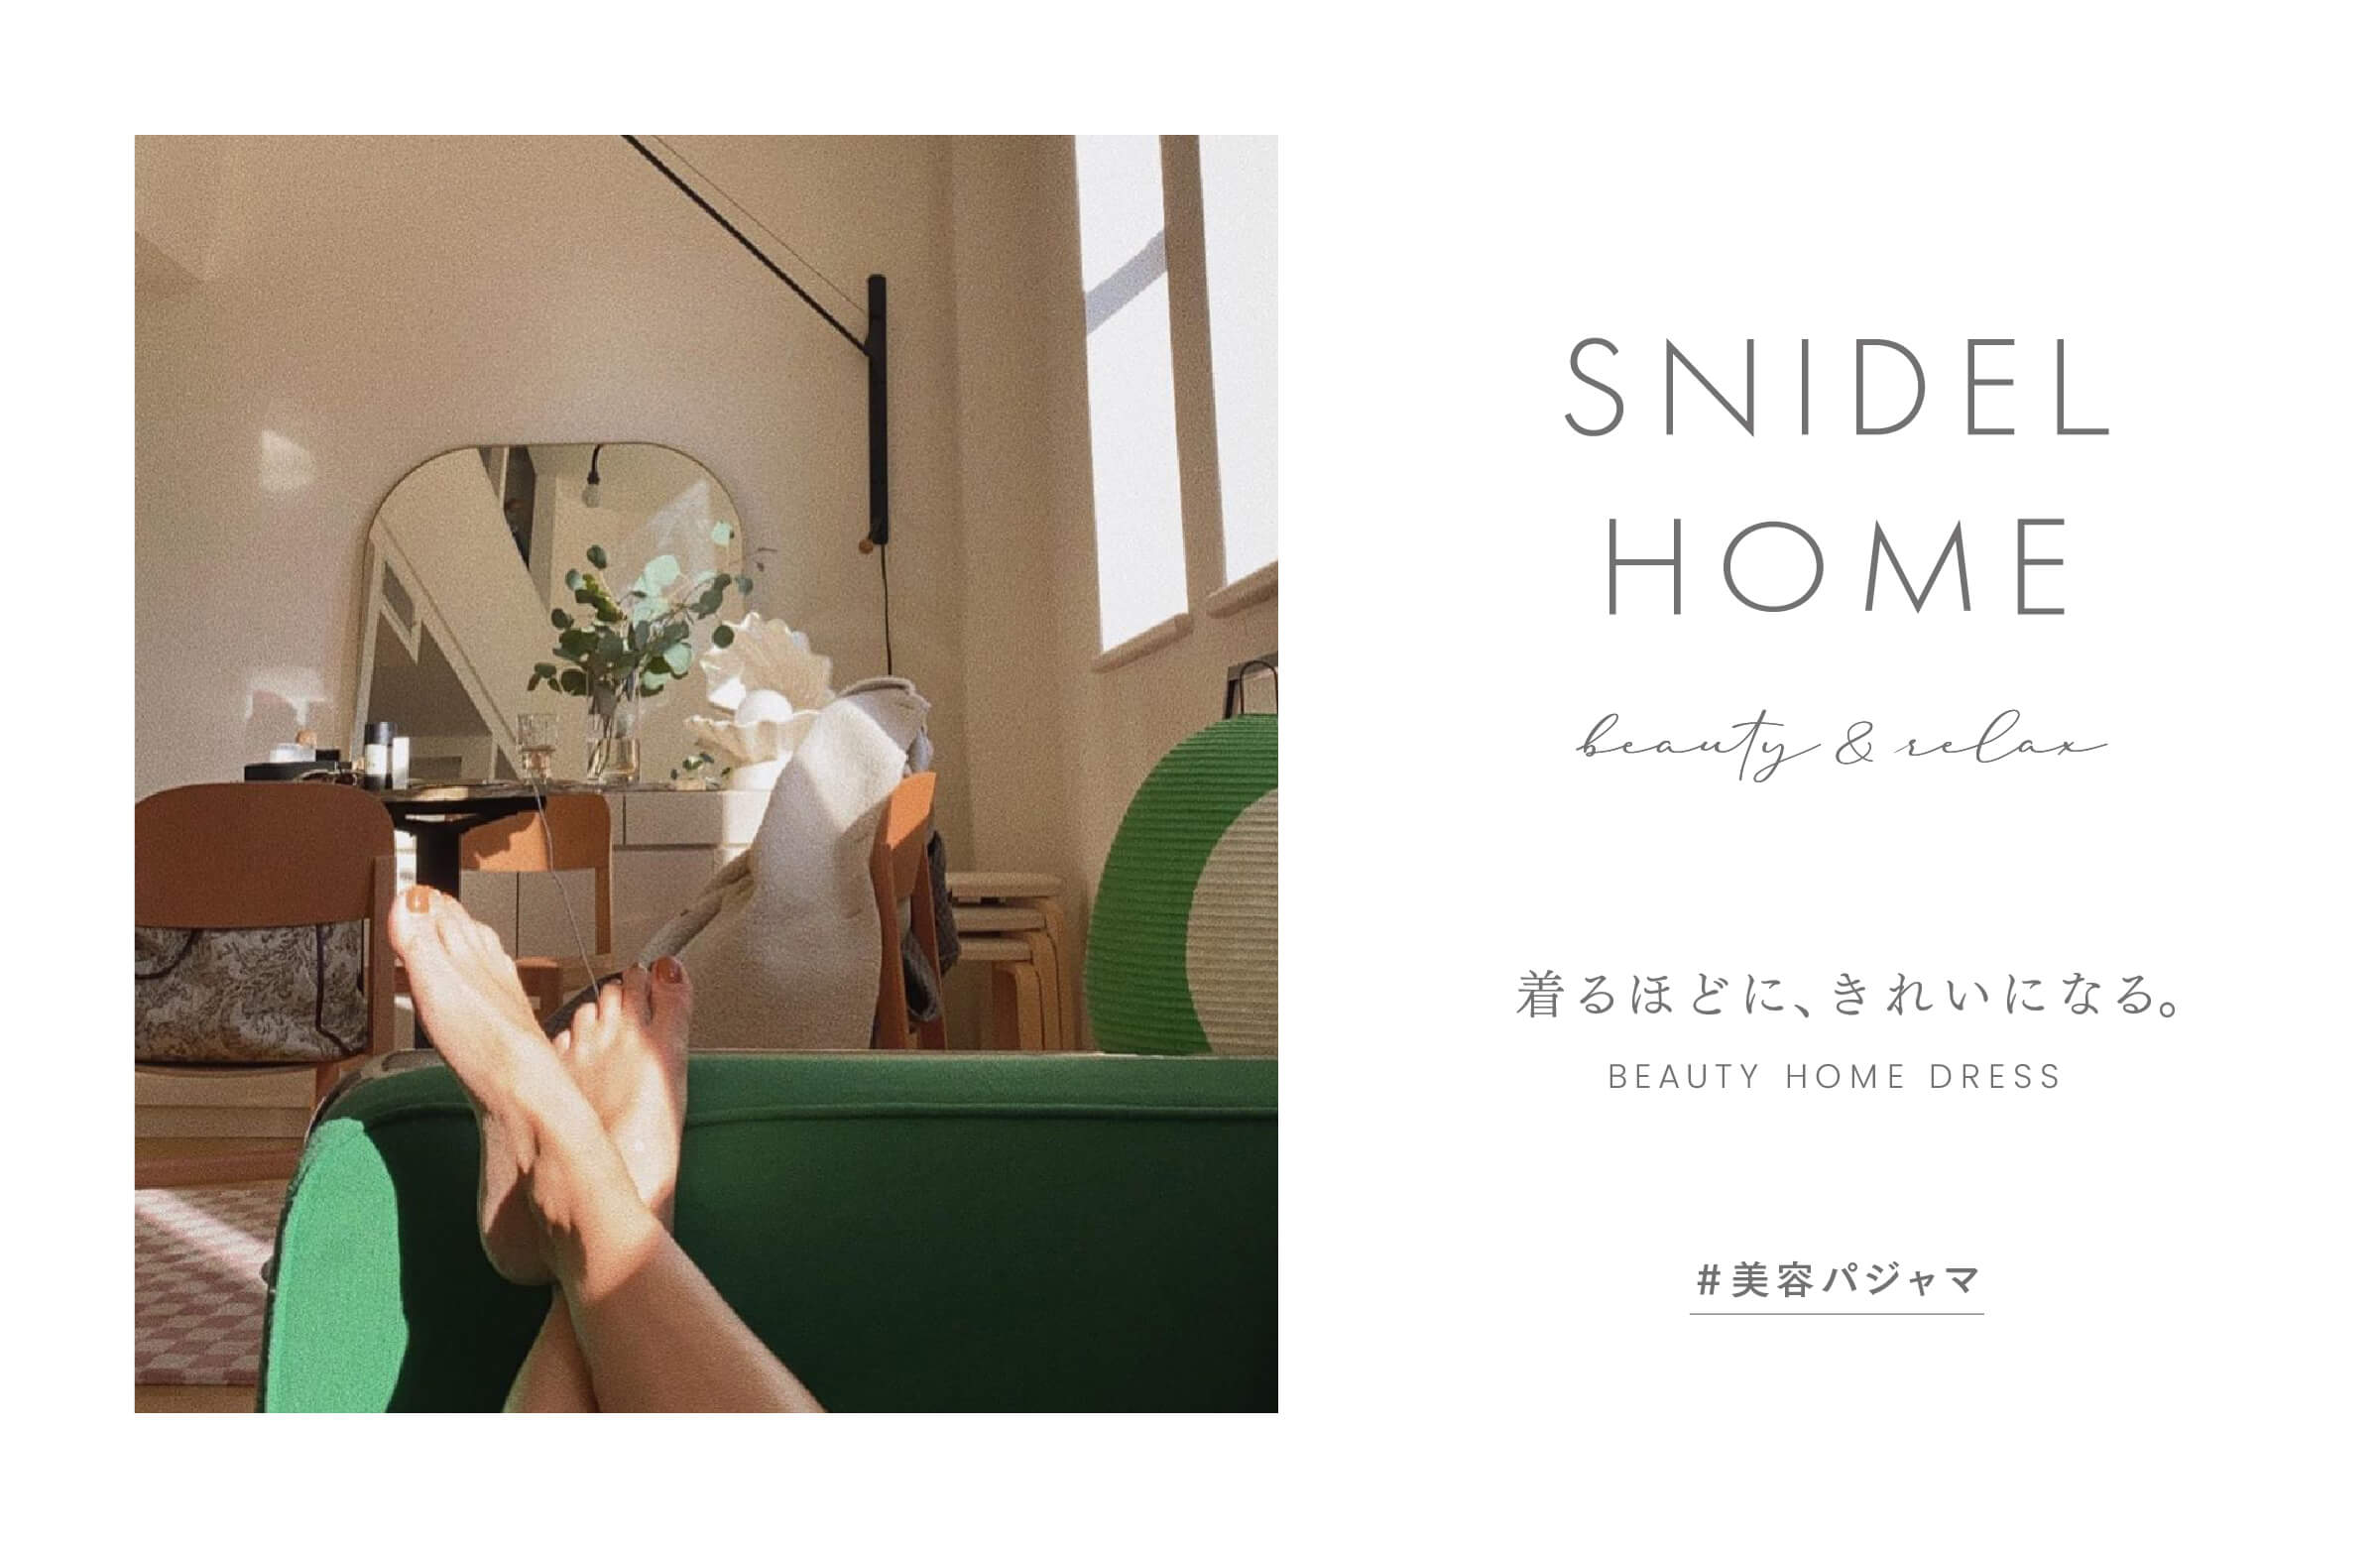 SNIDEL HOME Beauty & Relax